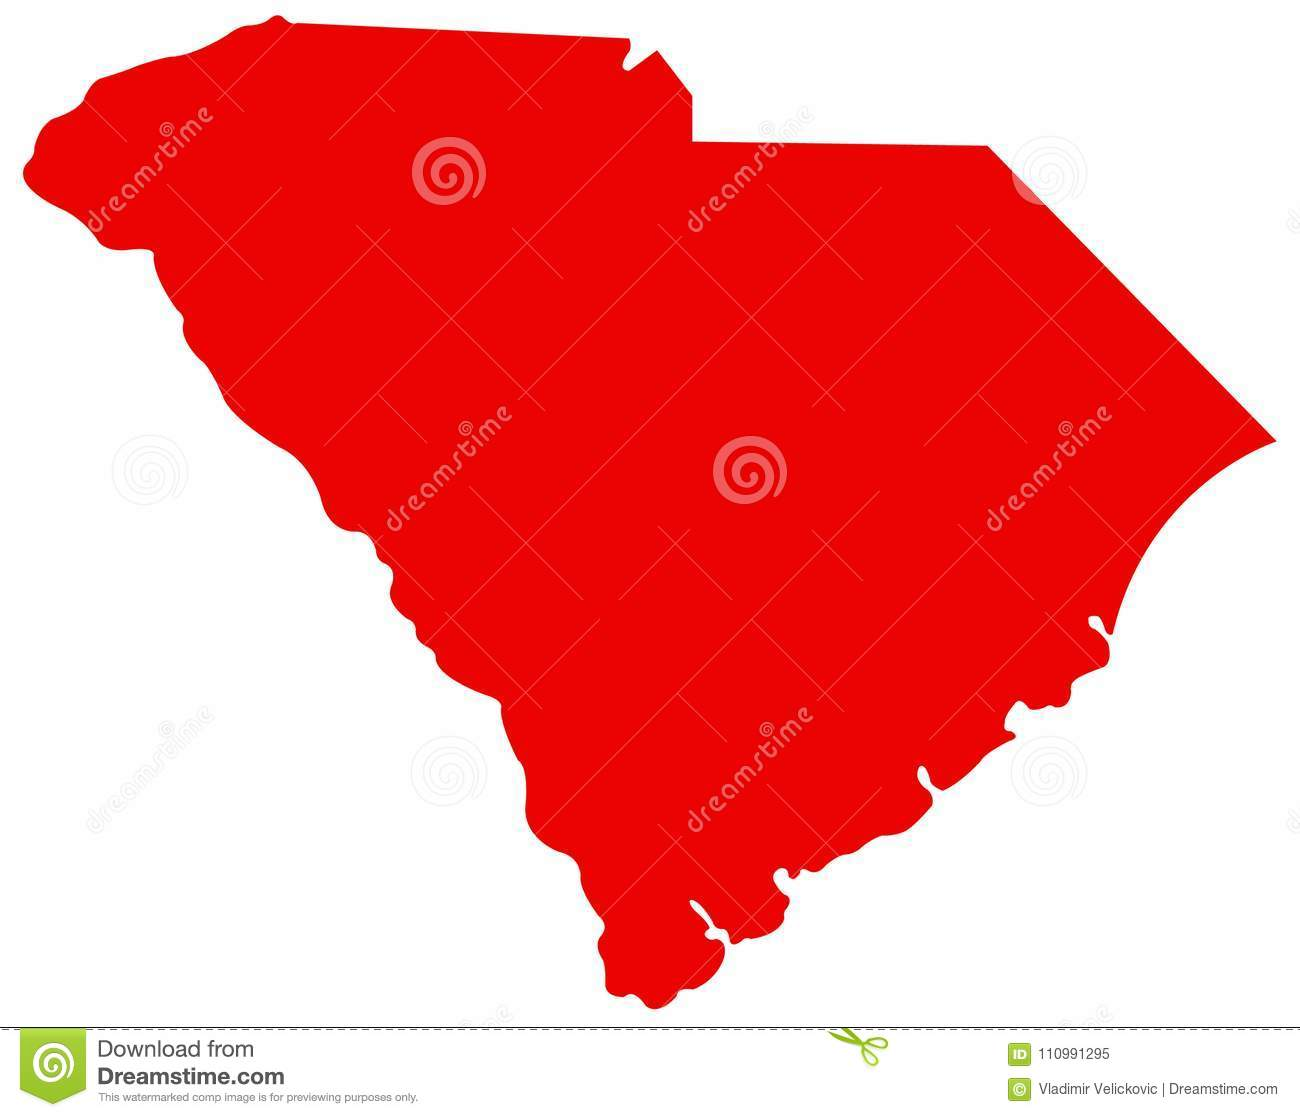 State South Carolina Map.South Carolina Map State In The Southeastern Region Of The United